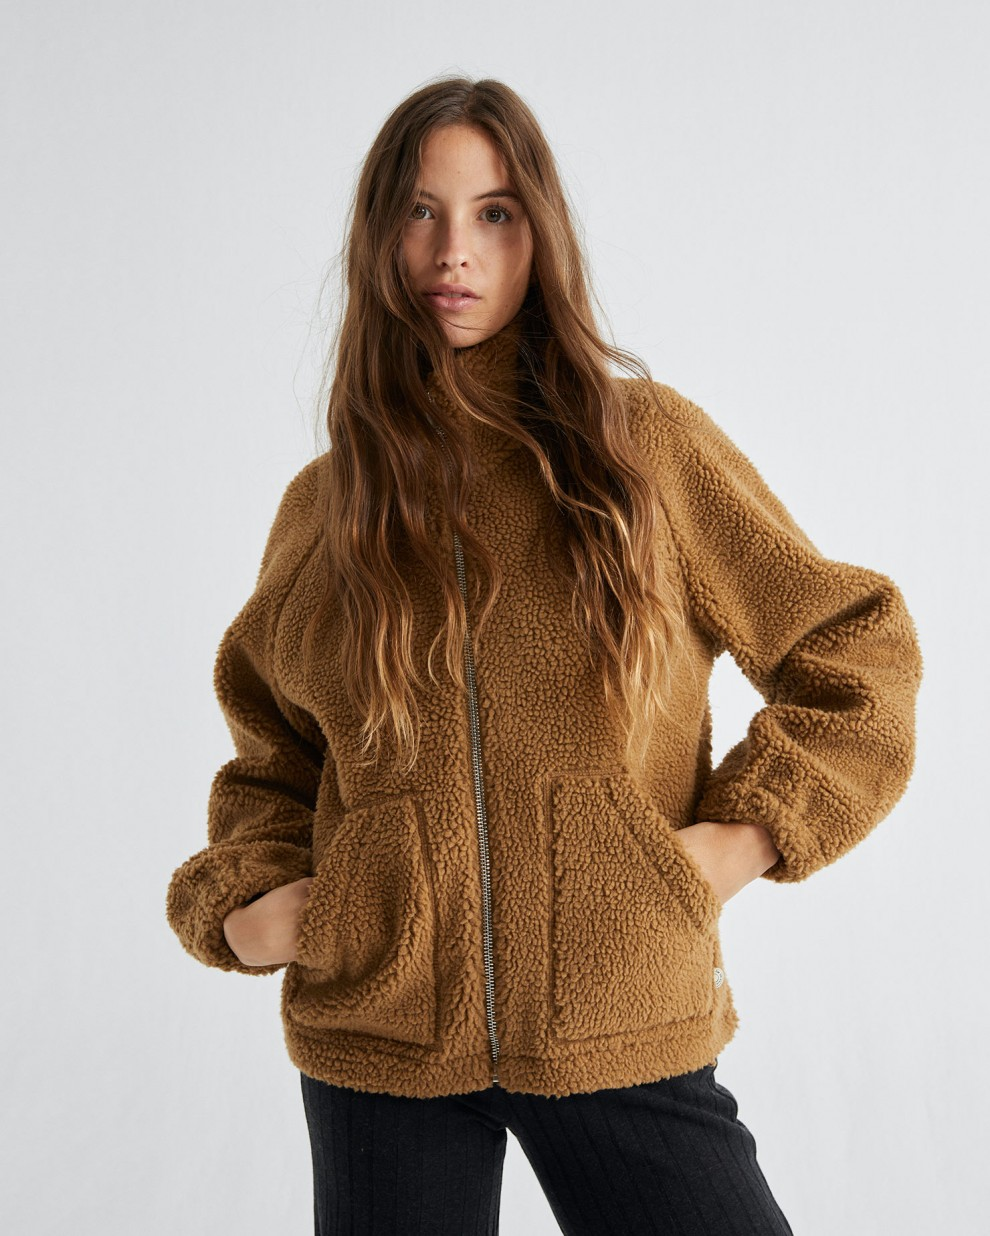 CARAMEL TRASH HEBE JACKET